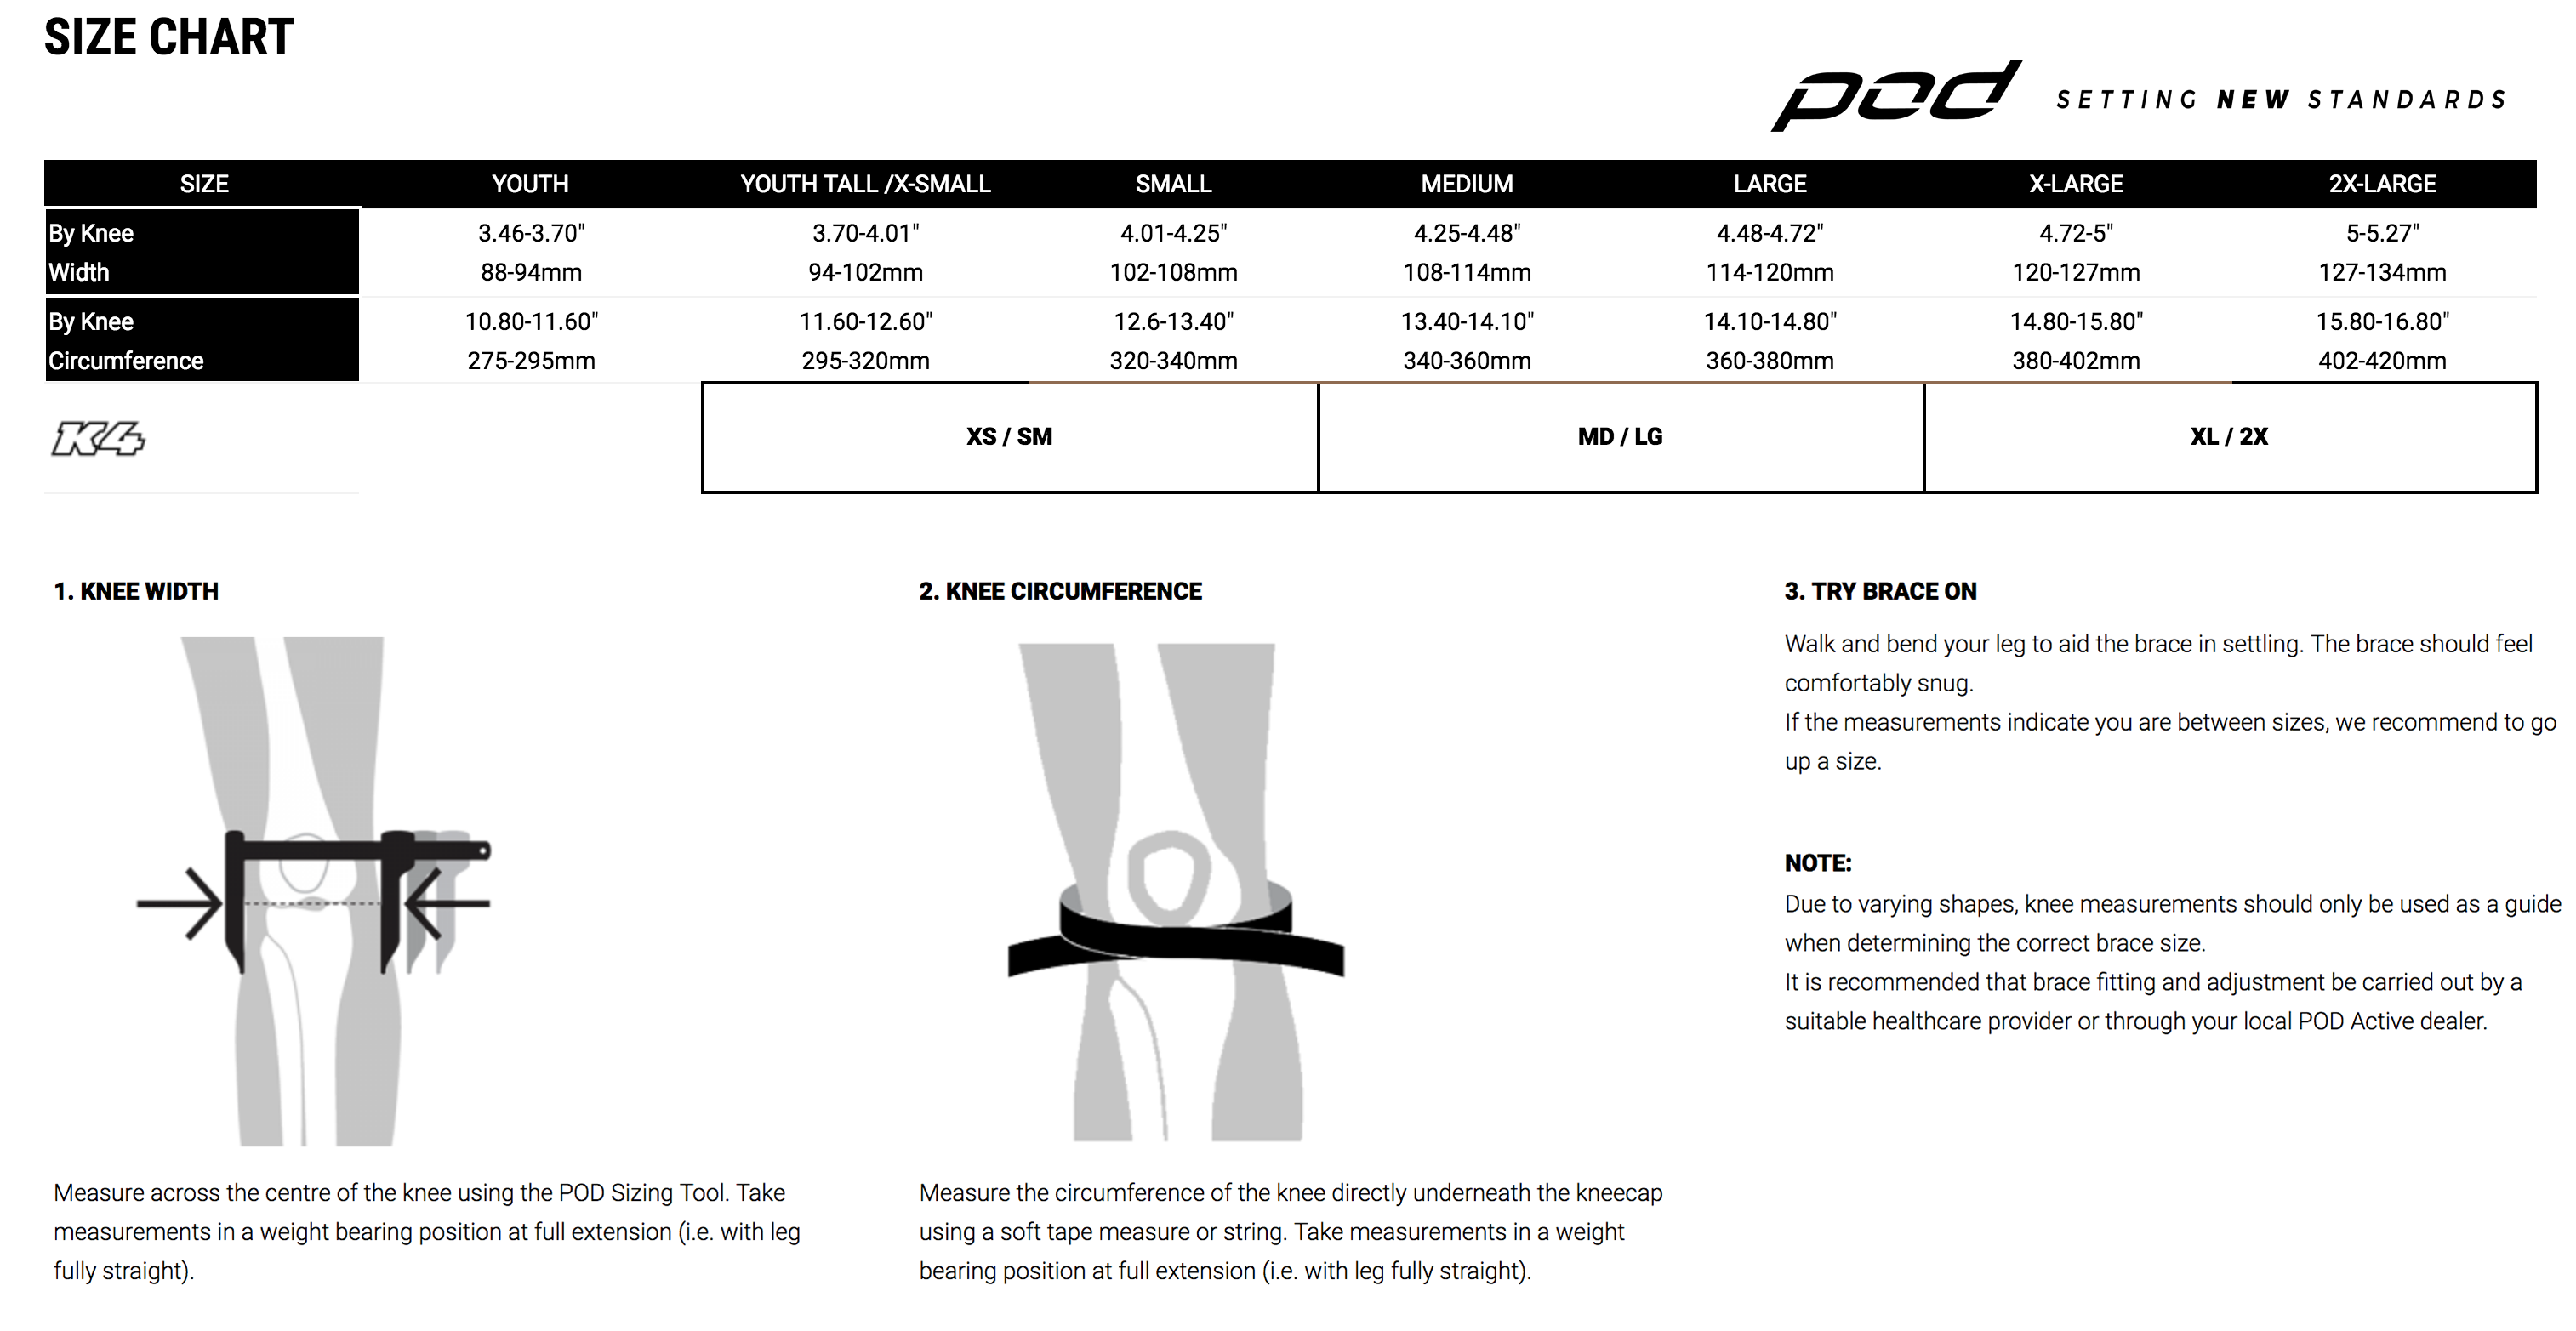 Podmx - K4 2.0 Knee Brace - RIGHT Size Guide